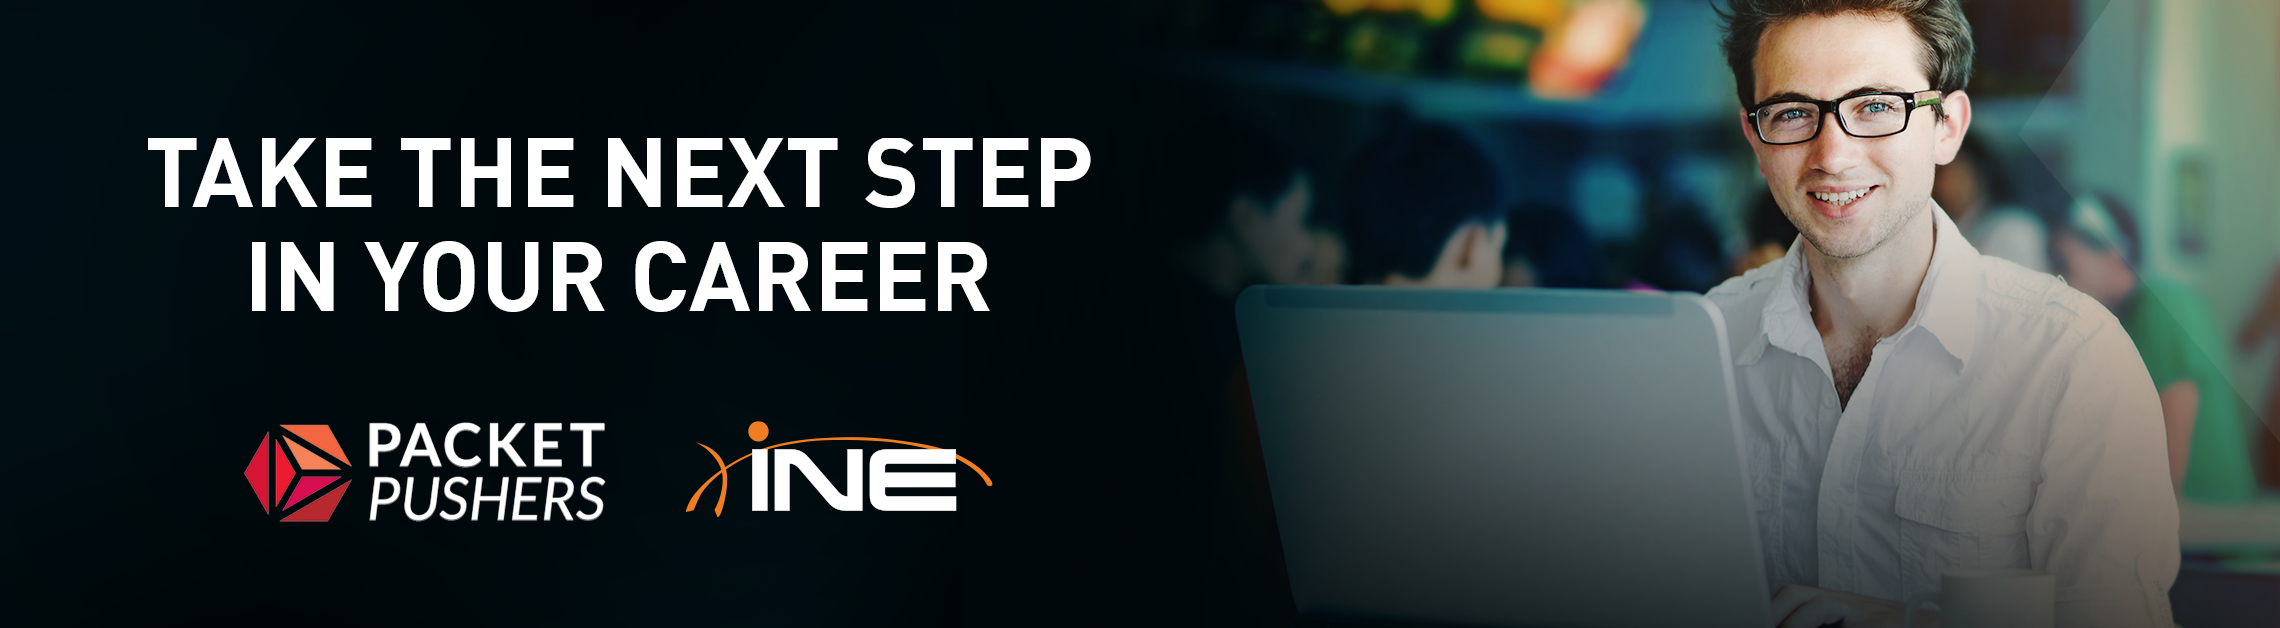 Welcome Packet Pushers! Take the next step in your career.